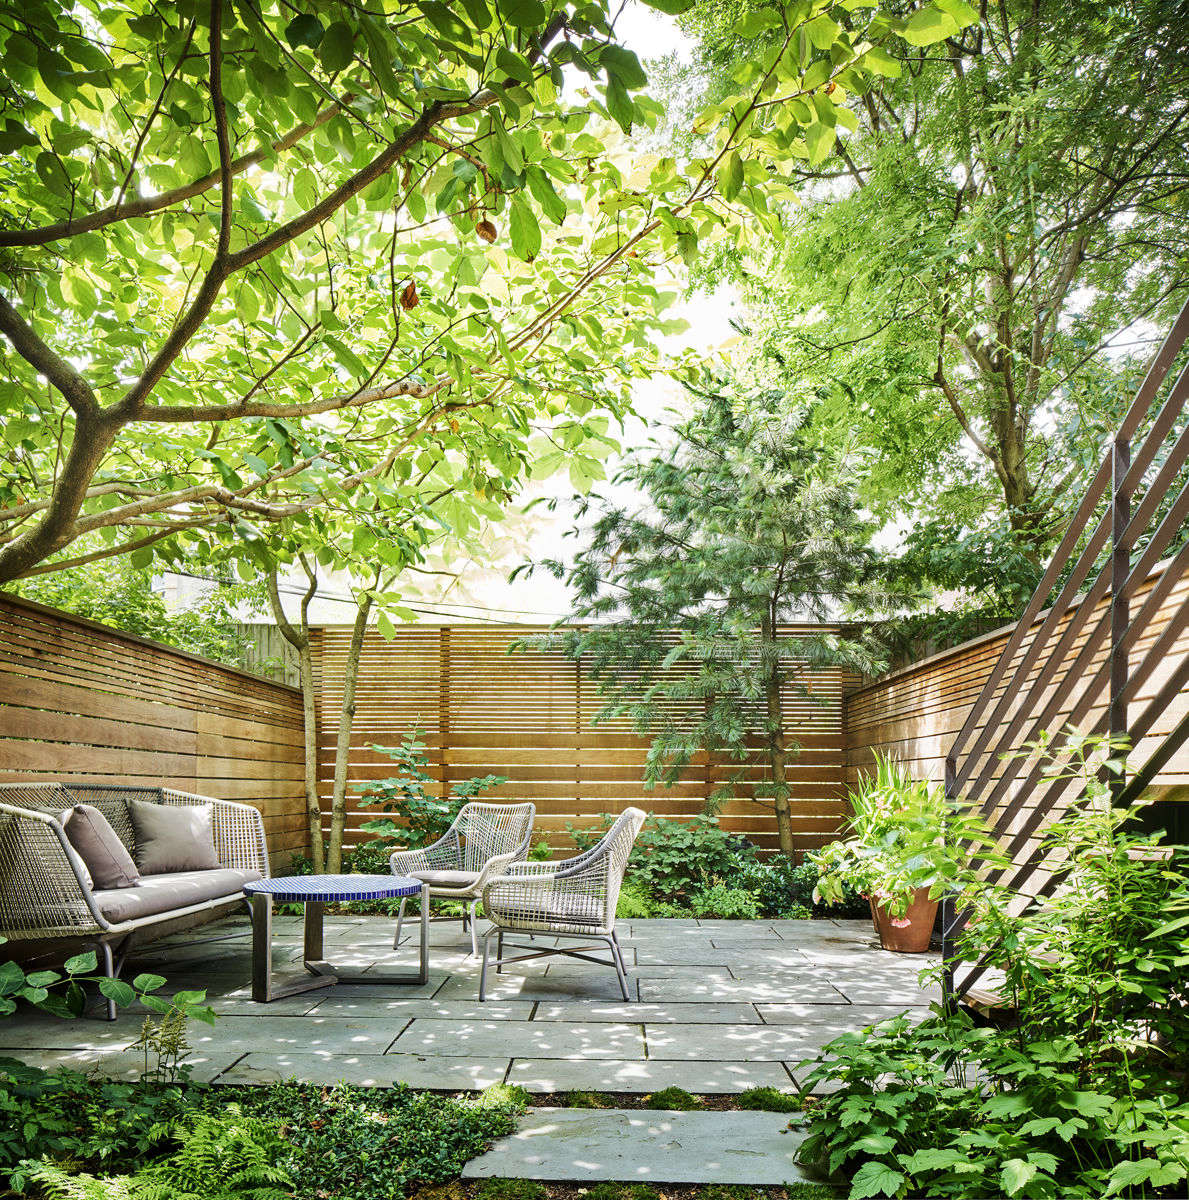 See more of this ipe fence in Landscape Architect Visit: A Leafy Garden in Park Slope in Brooklyn. Photograph by Dan Wonderly, courtesy of Kim Hoyt Architects.